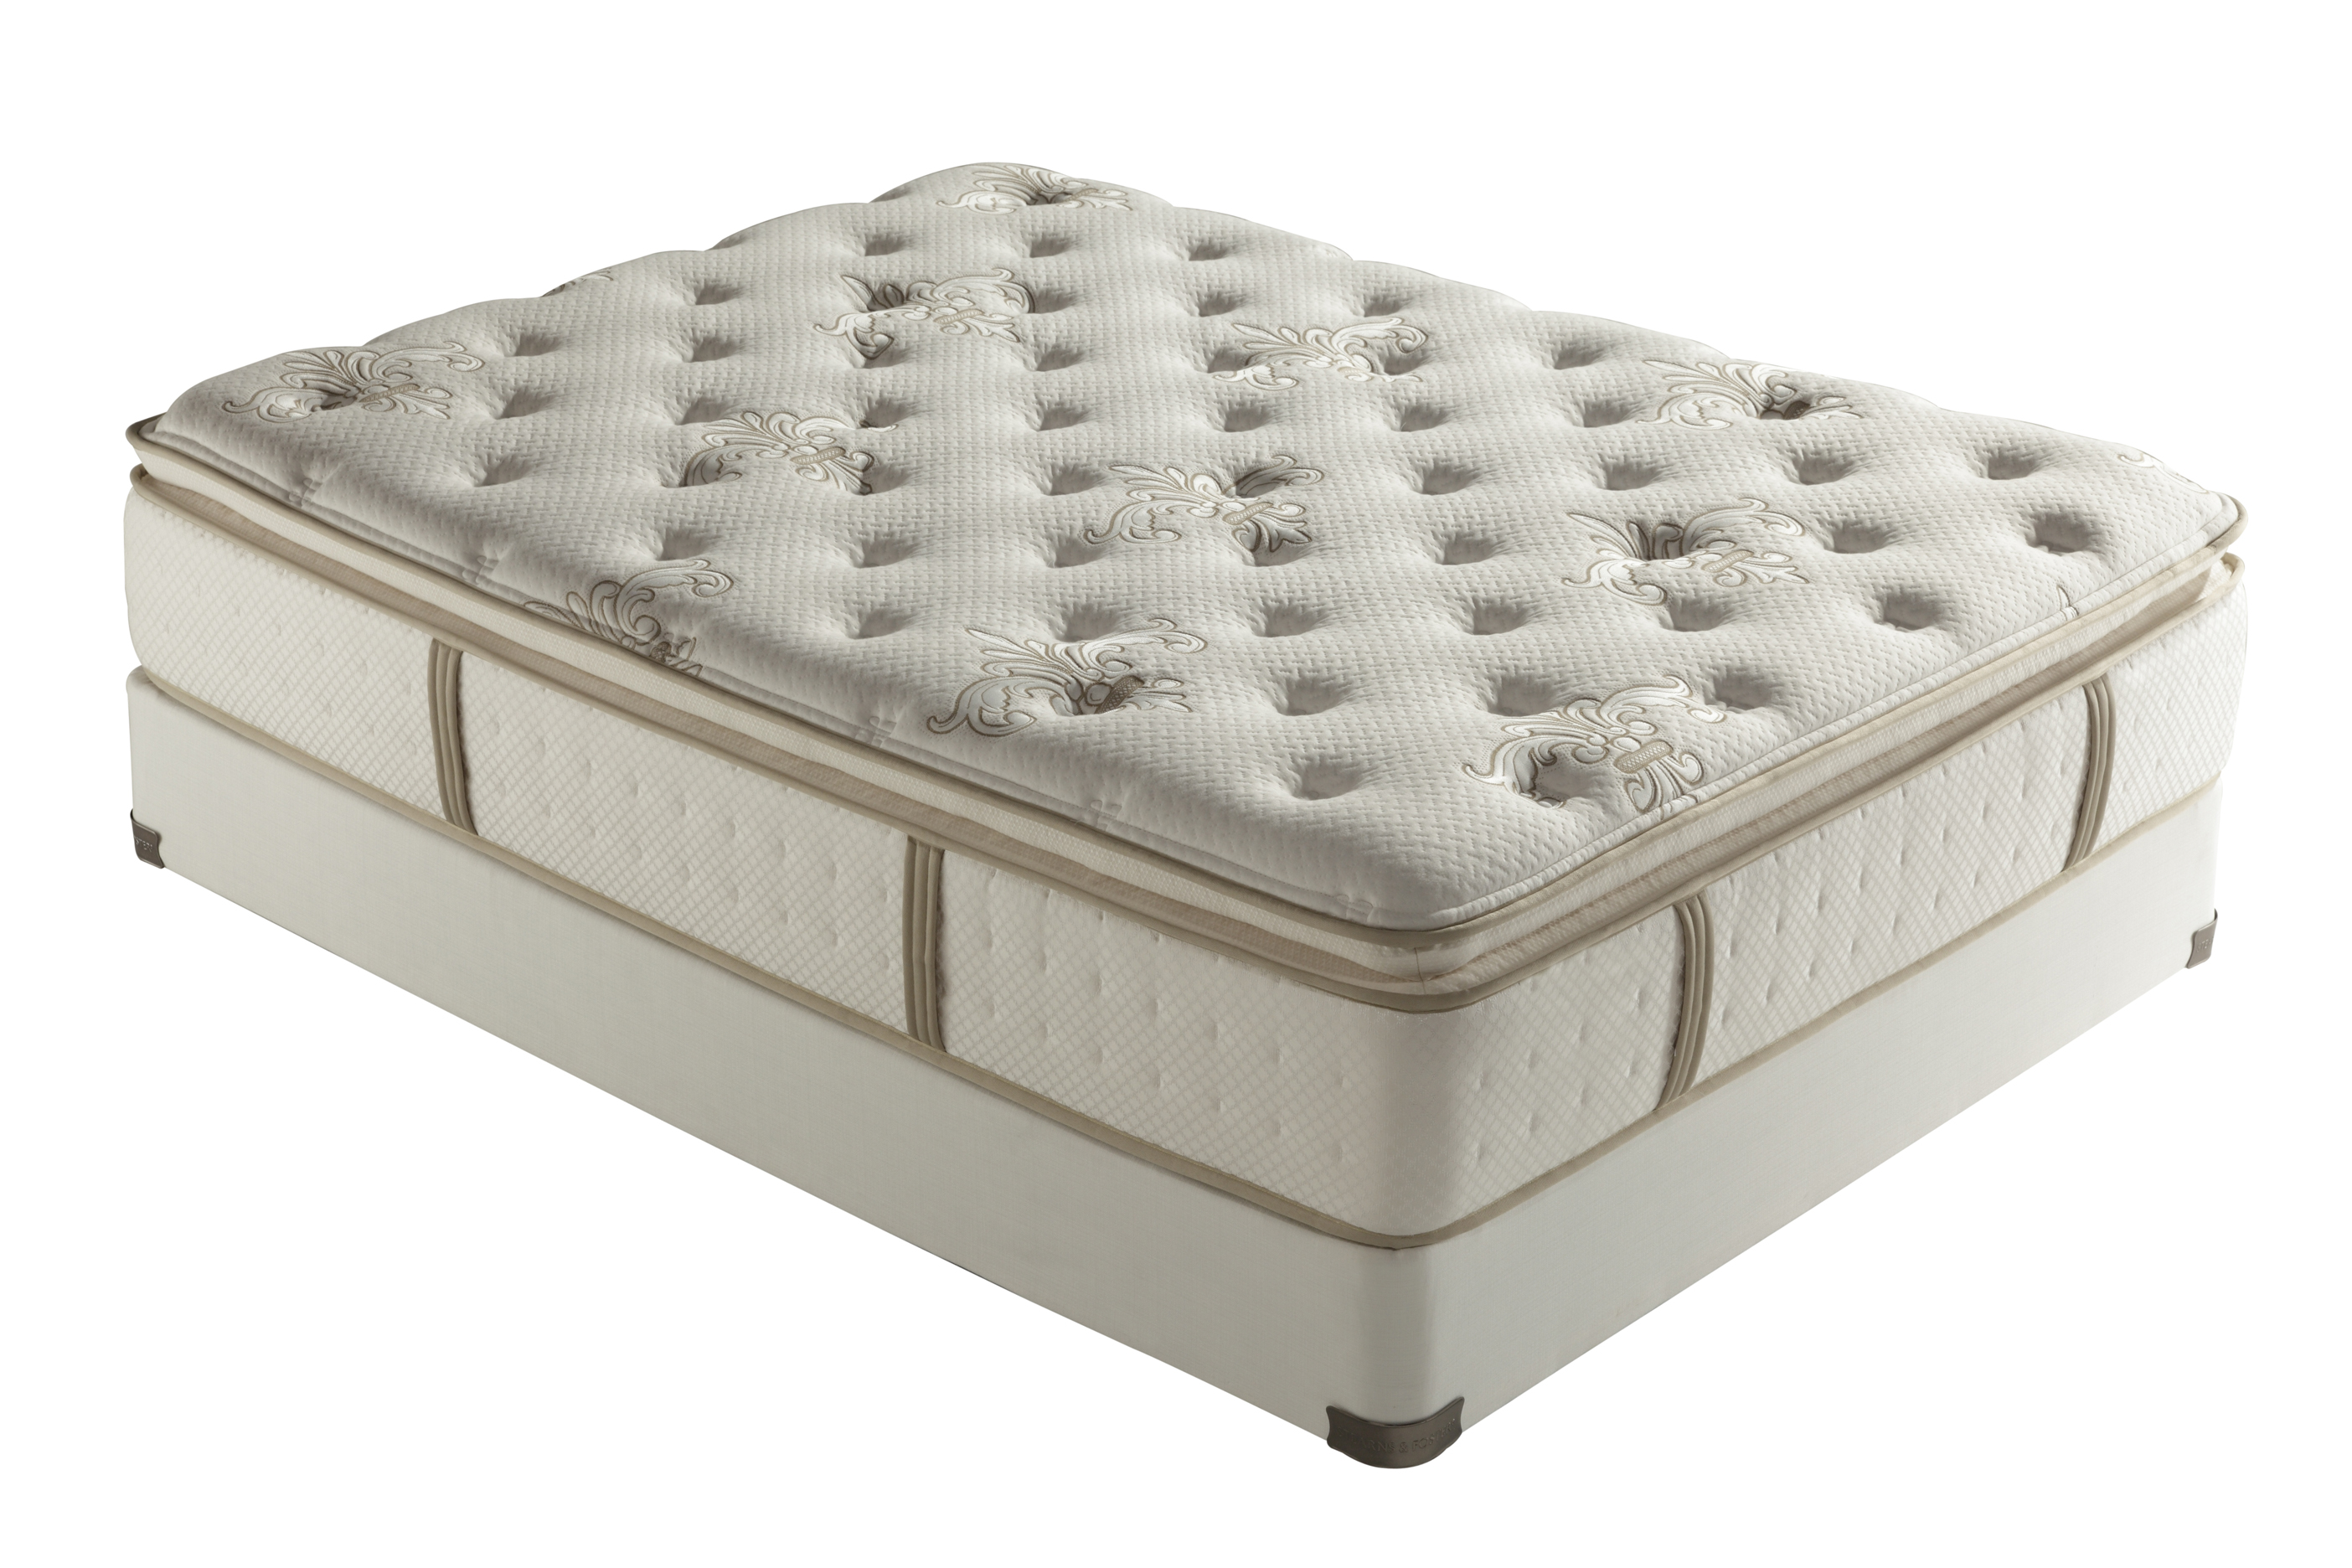 Stearns Foster Peggy Luxury Firm Pillow Top Mattress